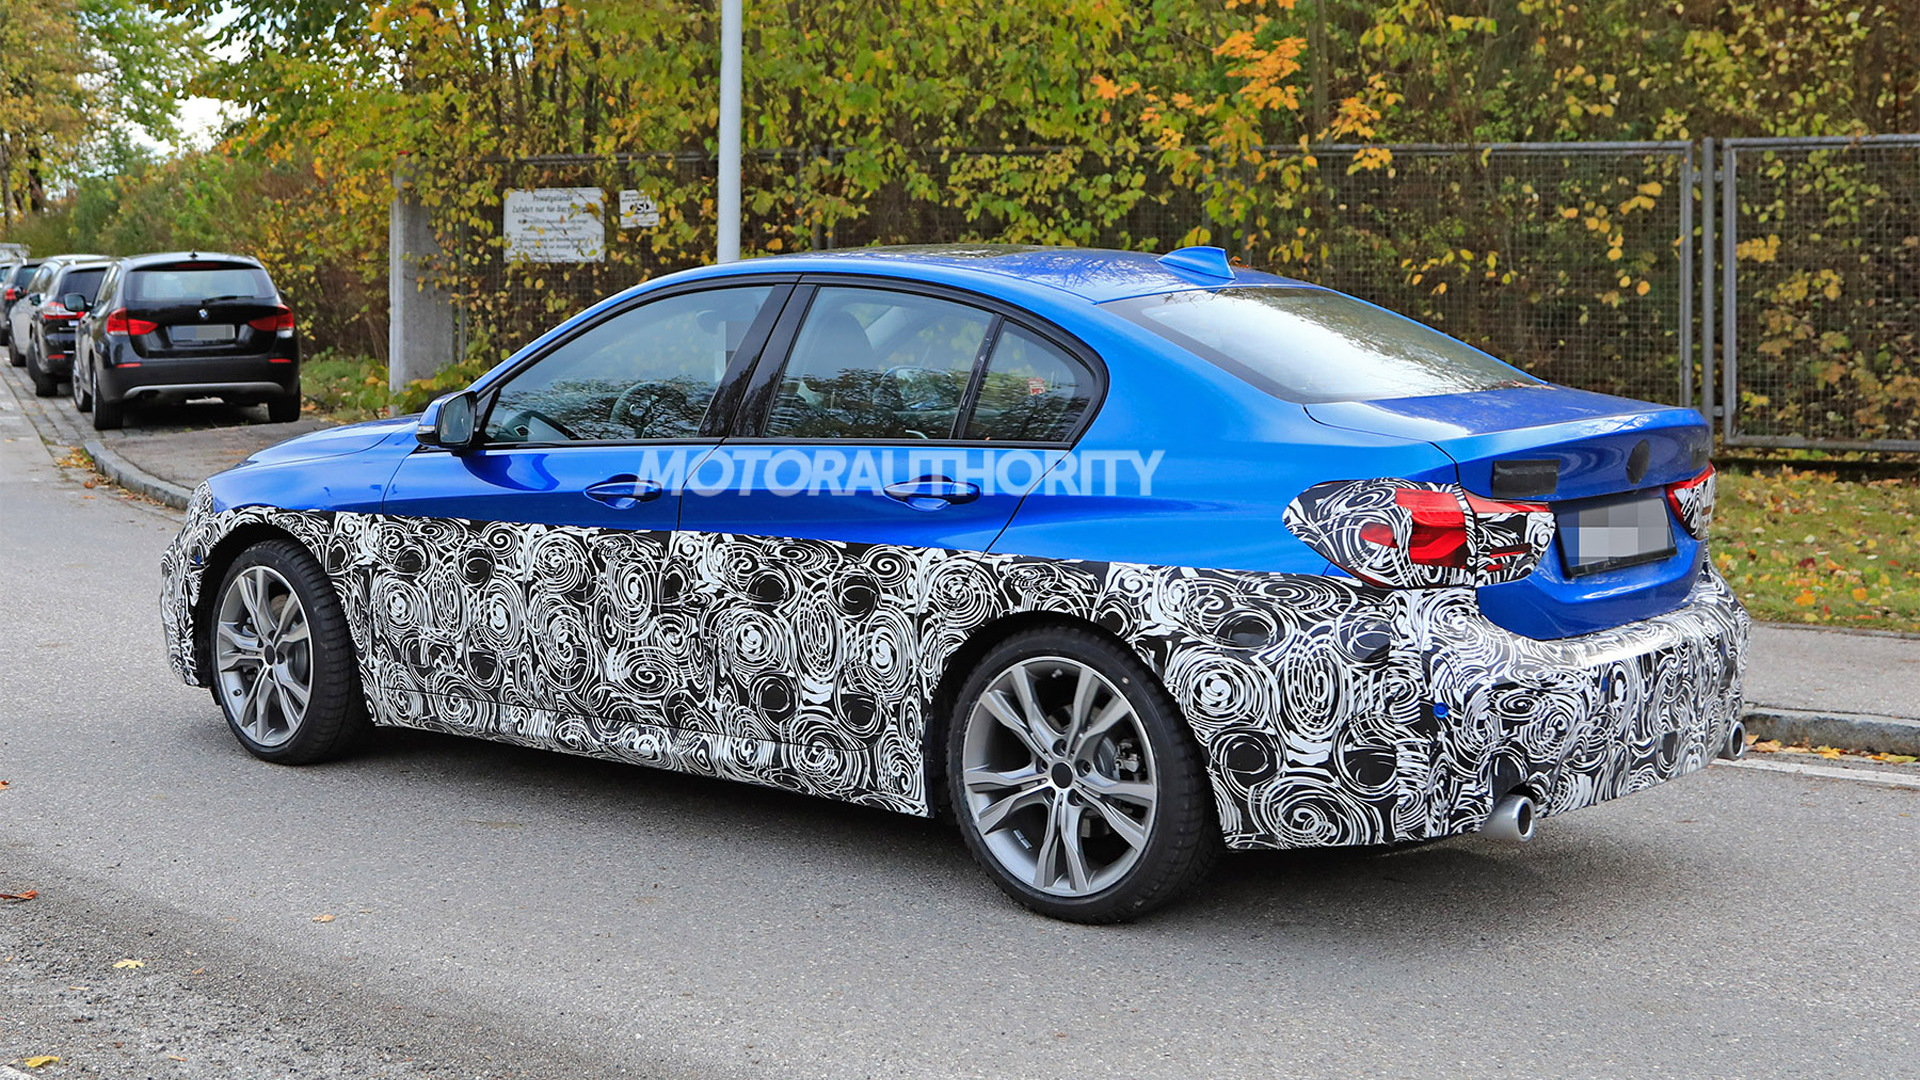 2020 BMW 1-Series facelift spy shots - Image via S. Baldauf/SB-Medien